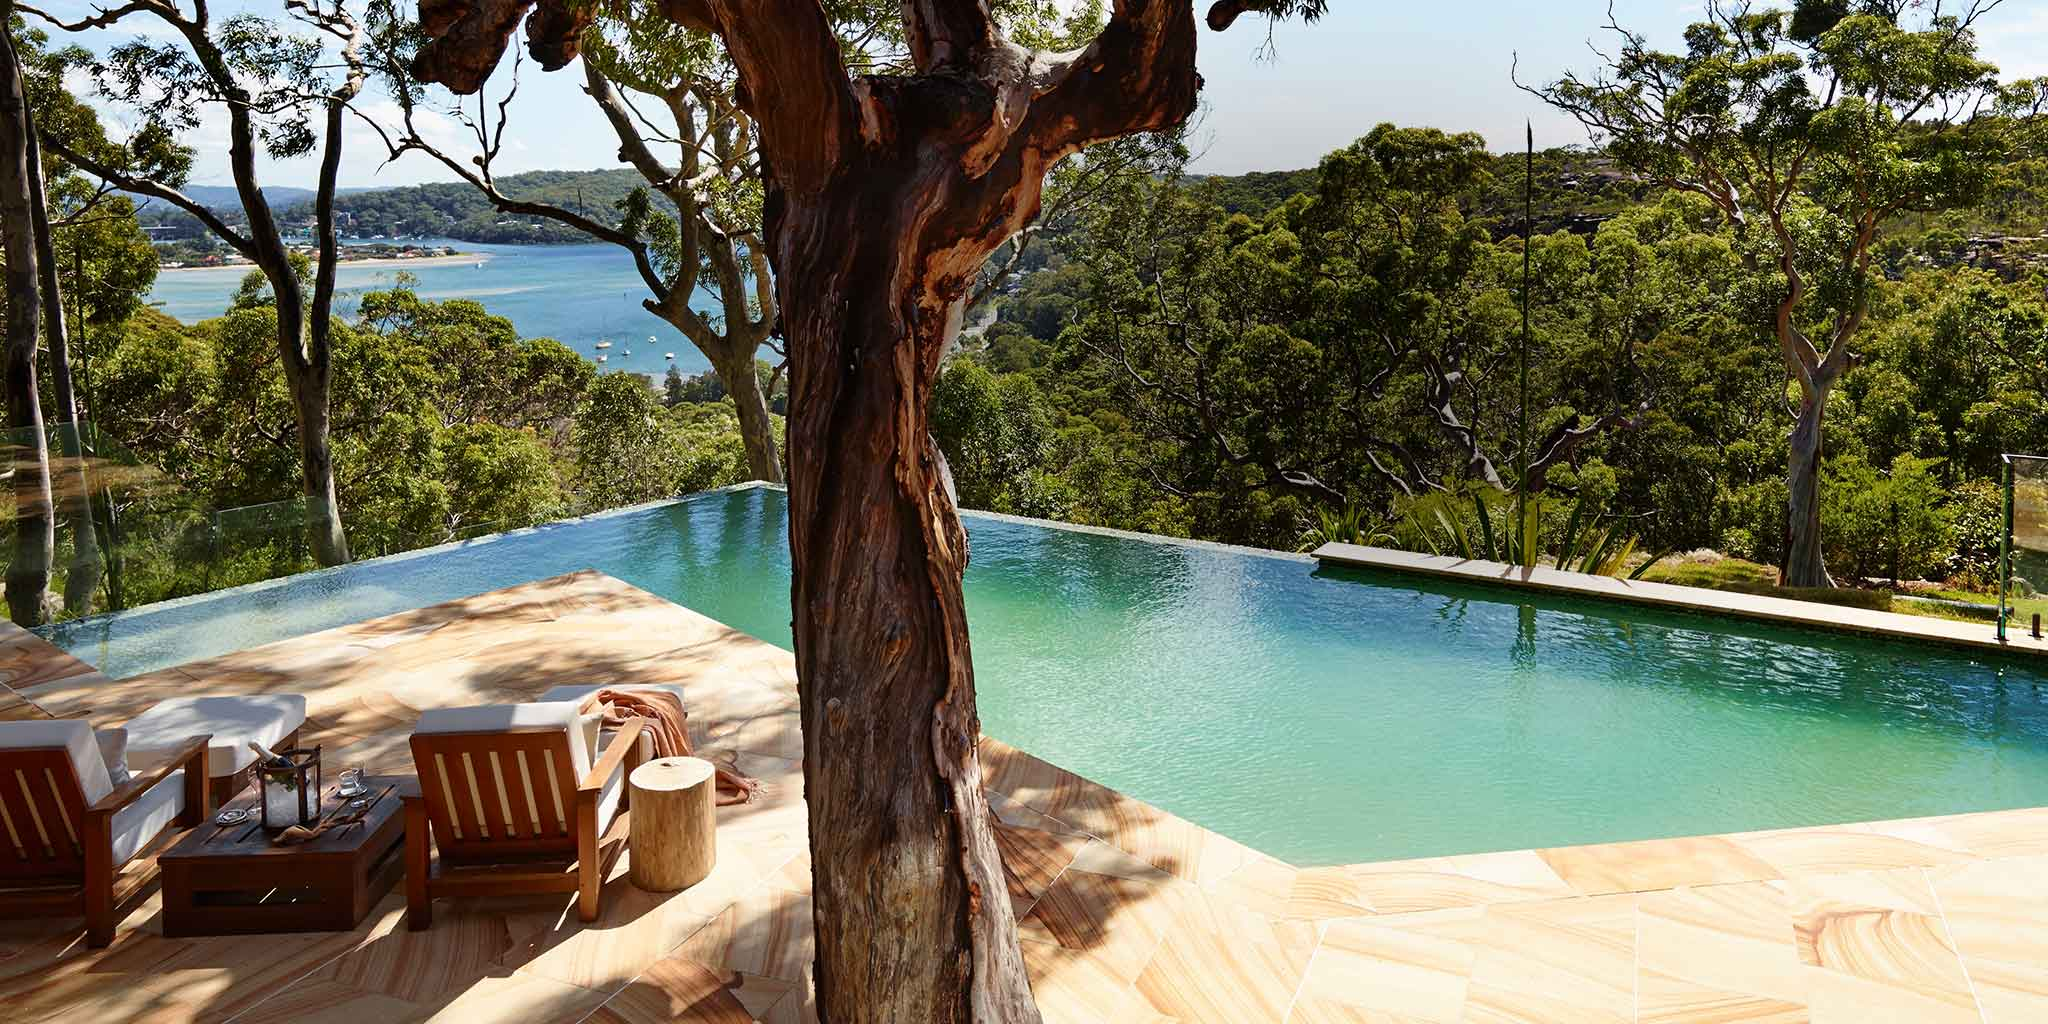 Holiday In Australia Luxury Lodges Of Australia Best - Chilean beach house ultimate holiday getaway